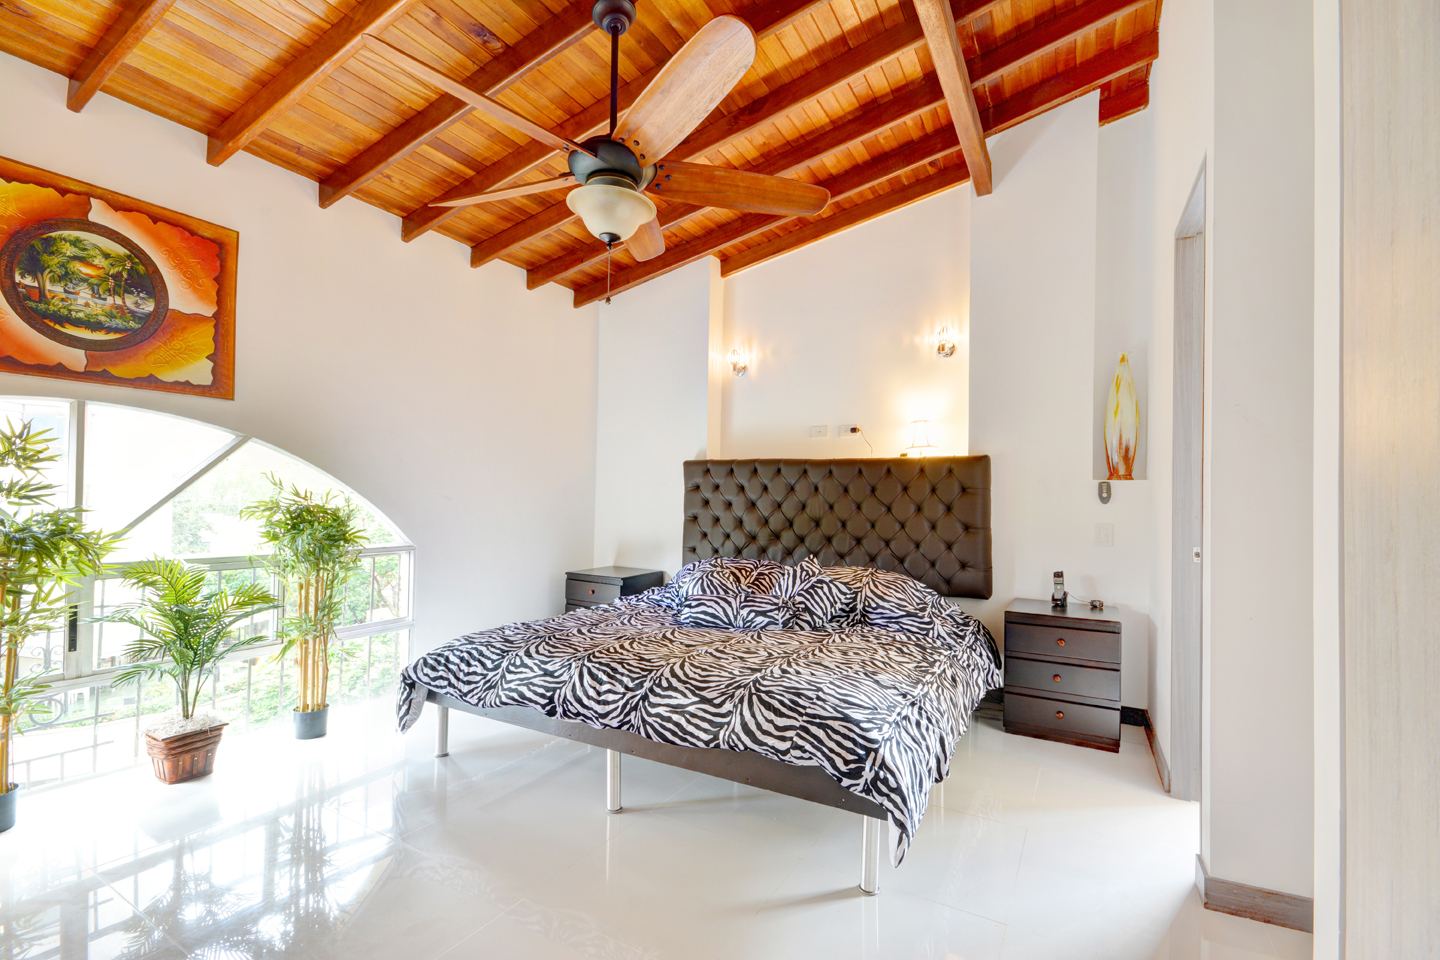 High ceilings with wooden beams in bedroom 2 in daylight